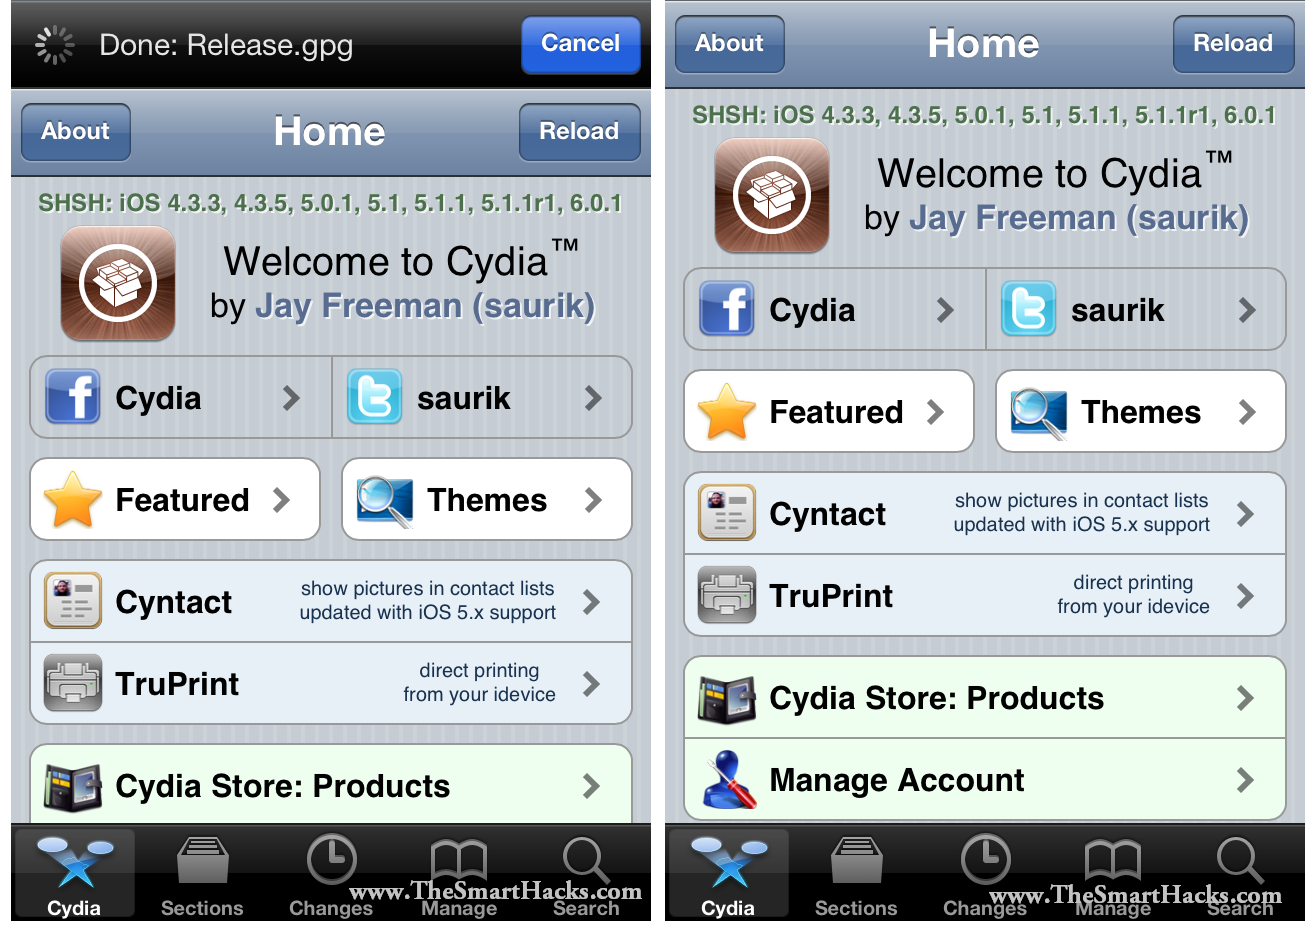 download free games app store cydia